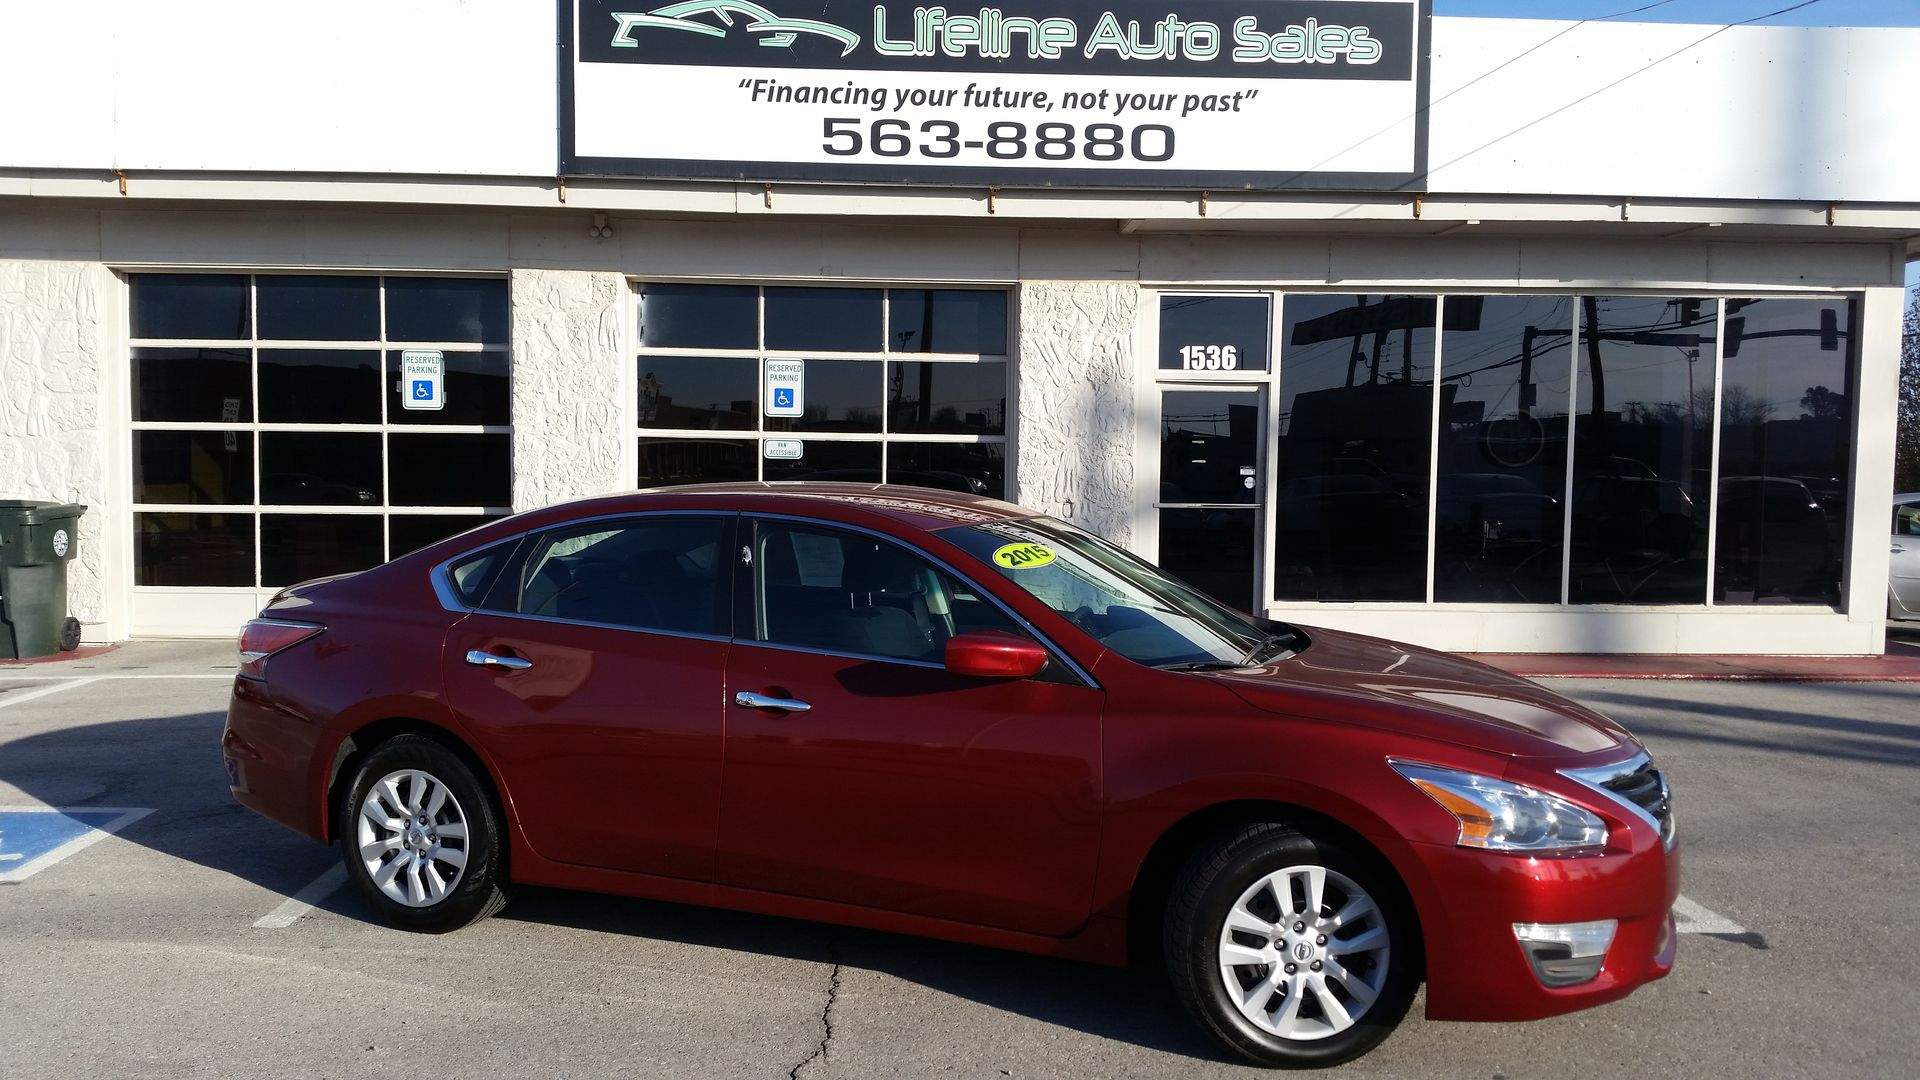 Lifeline Auto Sales offers used vehicles for sale with interest ...